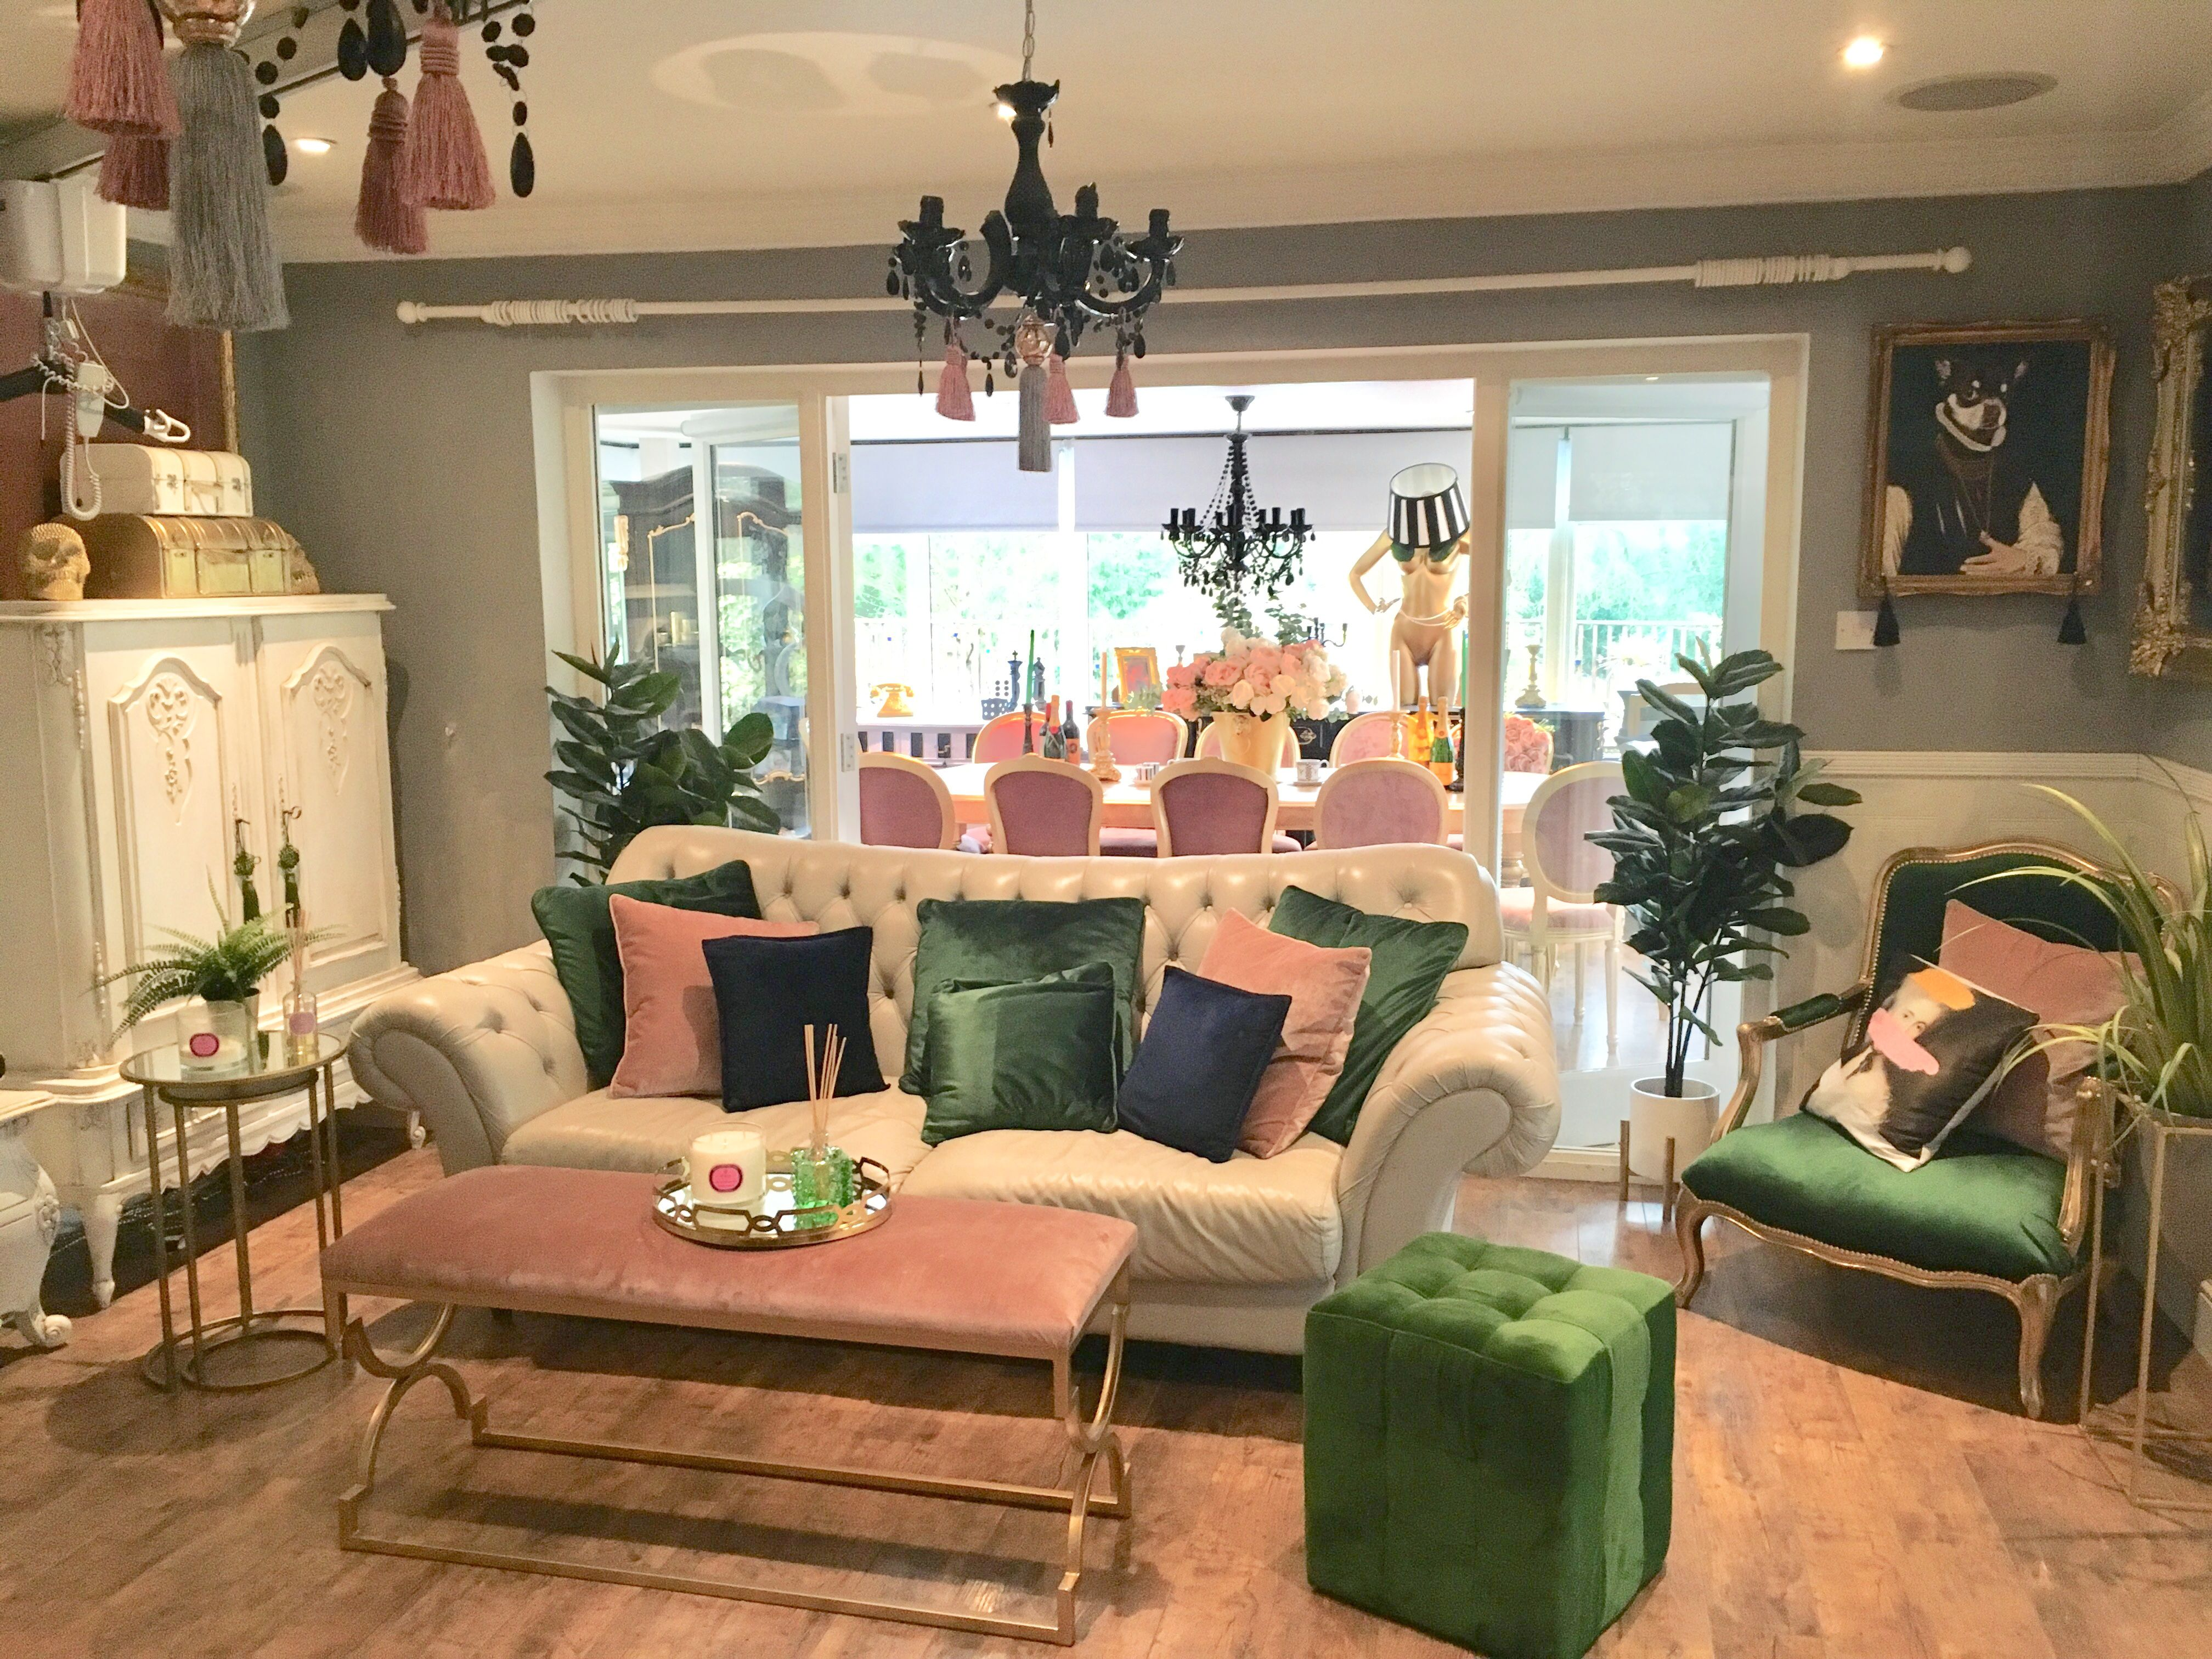 30 Excellent Photo Of Eccentric Living Room Eccentric Living Room Glam Living Room Pink Velvet Aude Glam Living Room Eccentric Living Room Velvet Living Room Living room ideas quirky